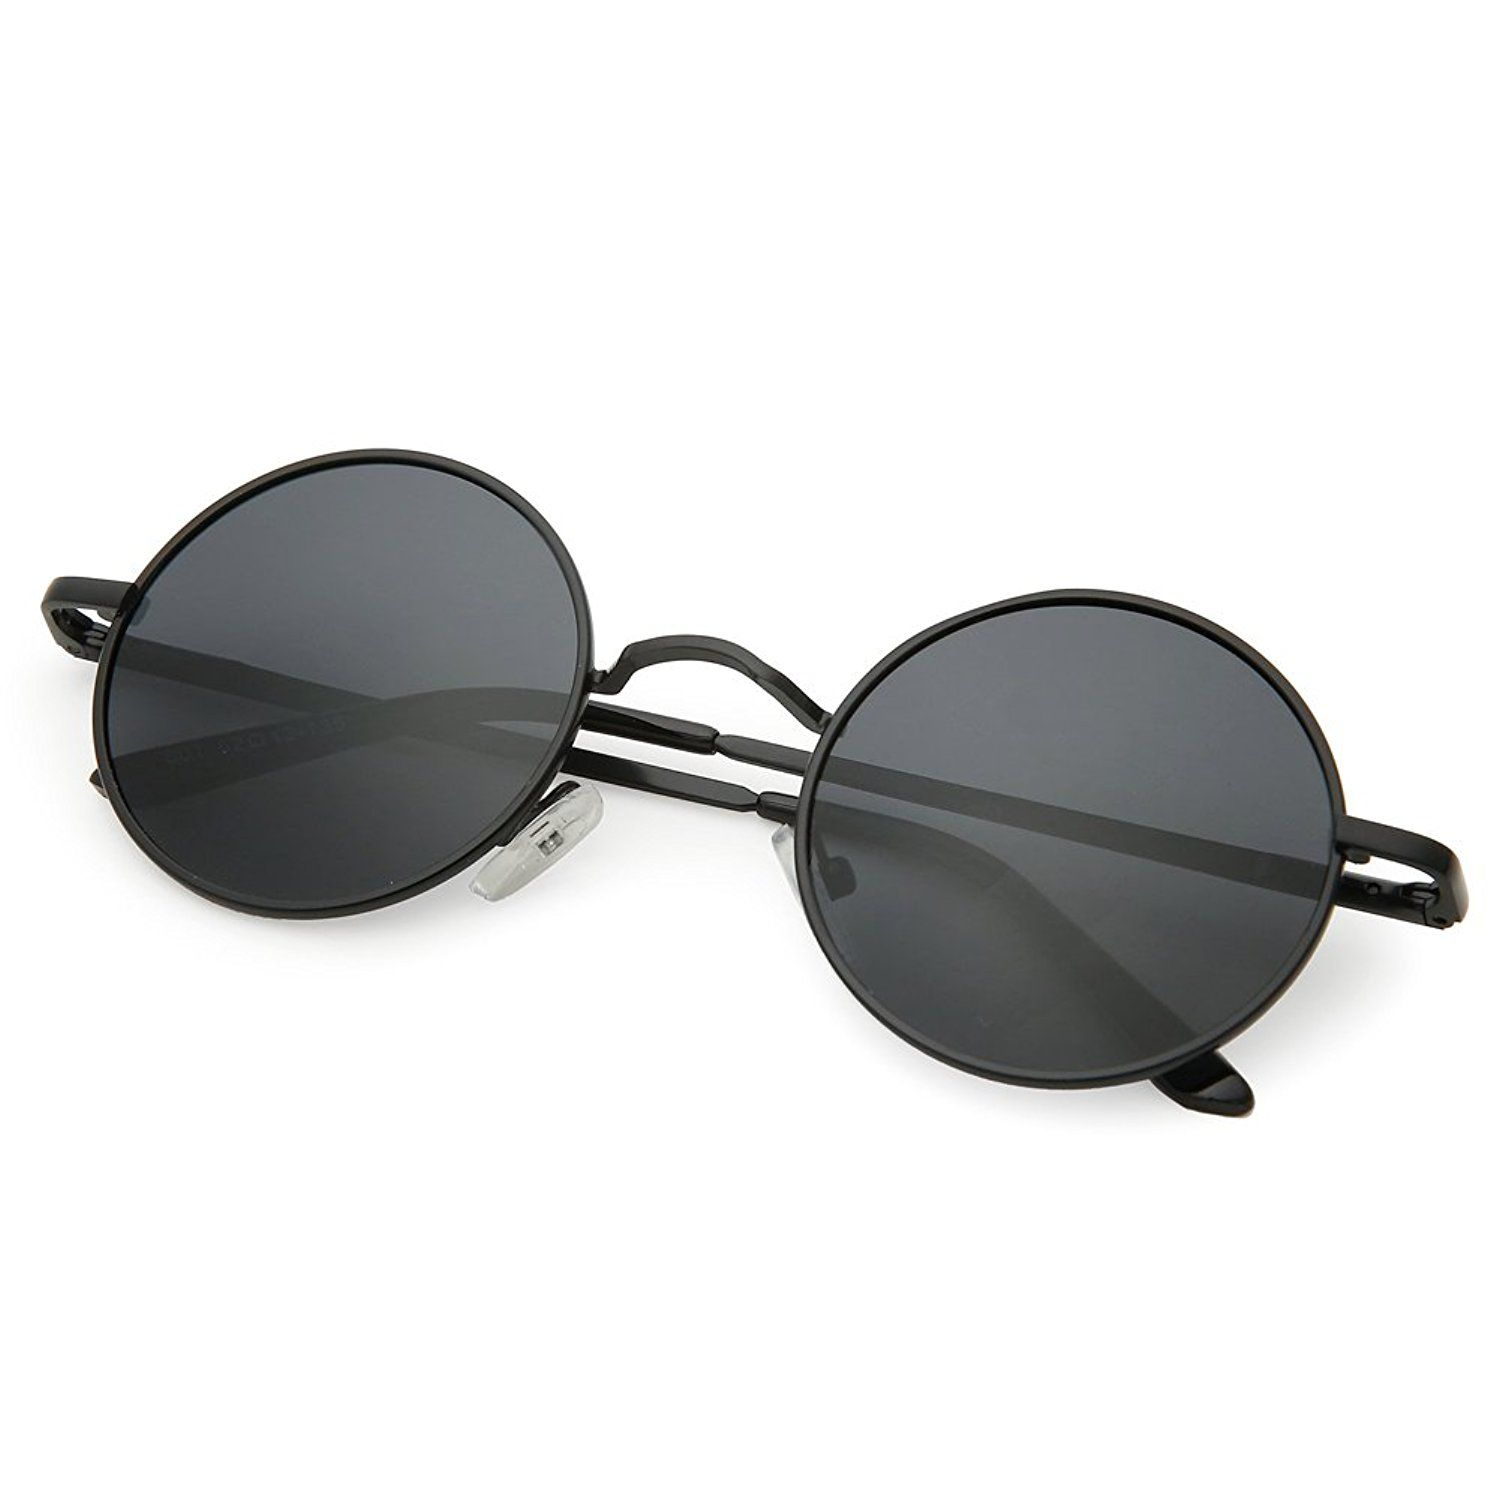 14da82830b5e Amazon.com  Joopin-Round Retro Polaroid Sunglasses Driving Polarized Sun  Glasses Men Steampunk Vintage (Black Grey)  Clothing